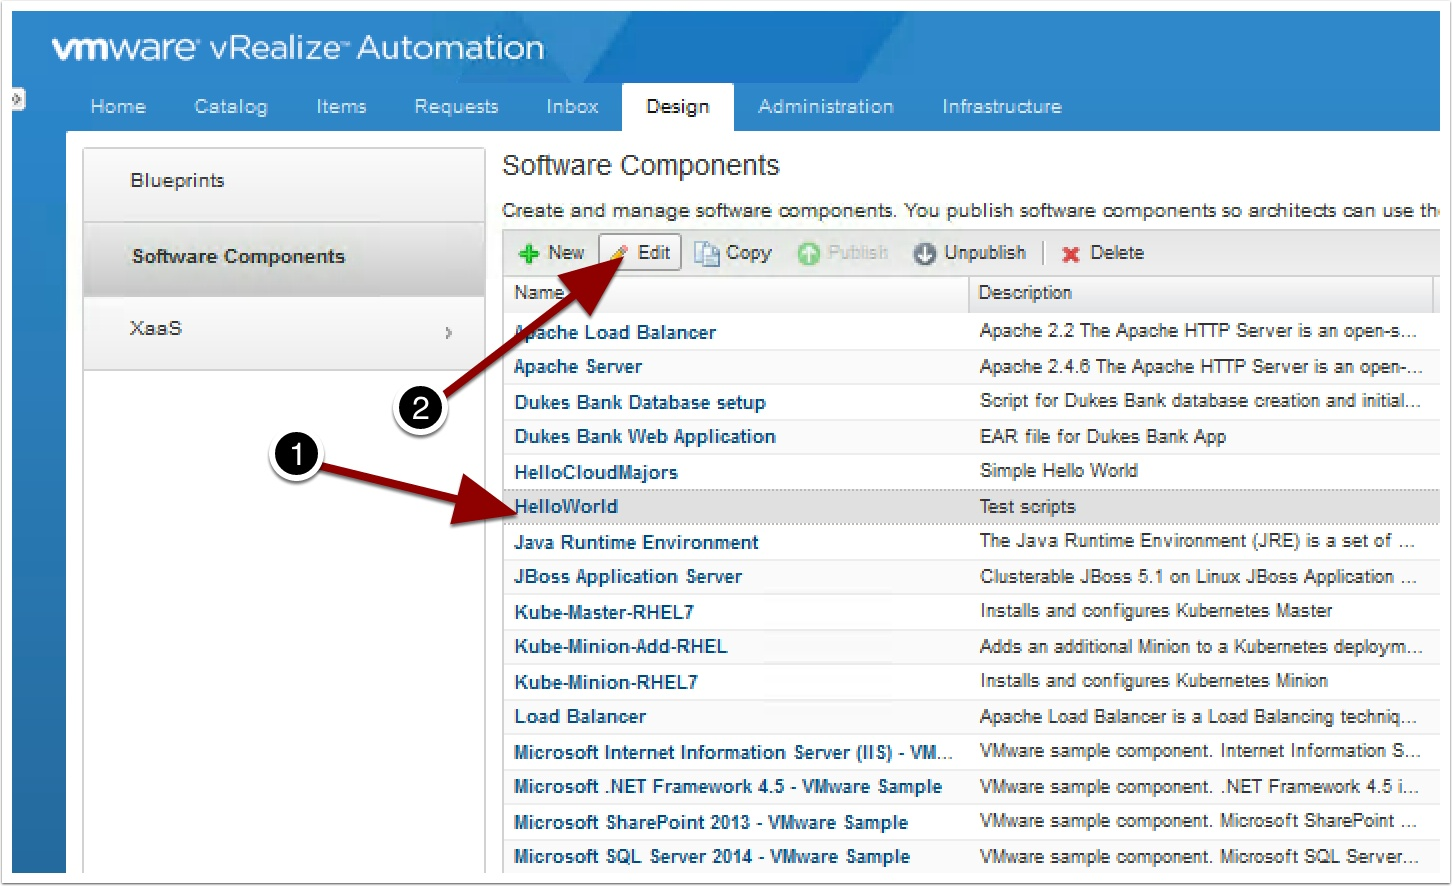 Vrealize automation 7 application authoring deepdive vmtocloud once logged in go to the design tab and software components and lets edit that helloworld script we created earlier malvernweather Image collections